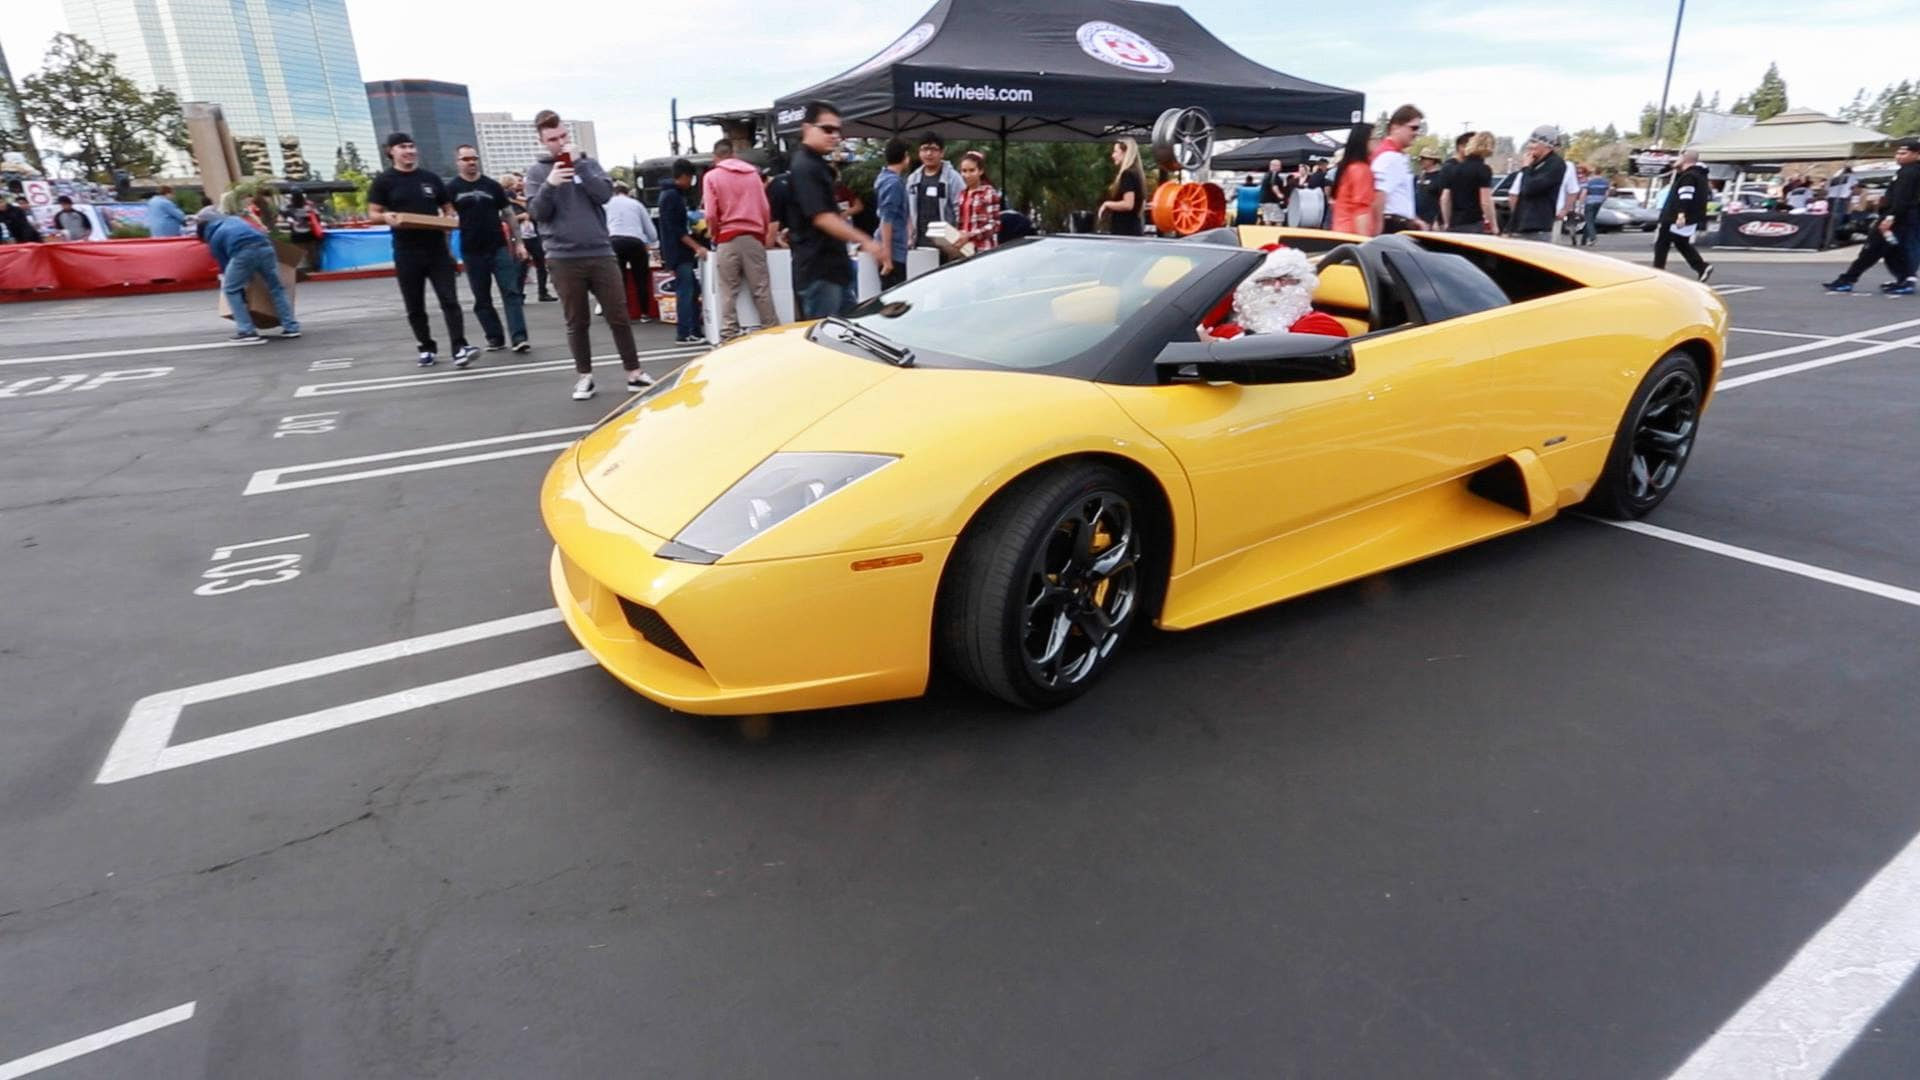 Santa Clause driving a Lamborghini to deliver toys for the kids at Motor 4 toys charity event